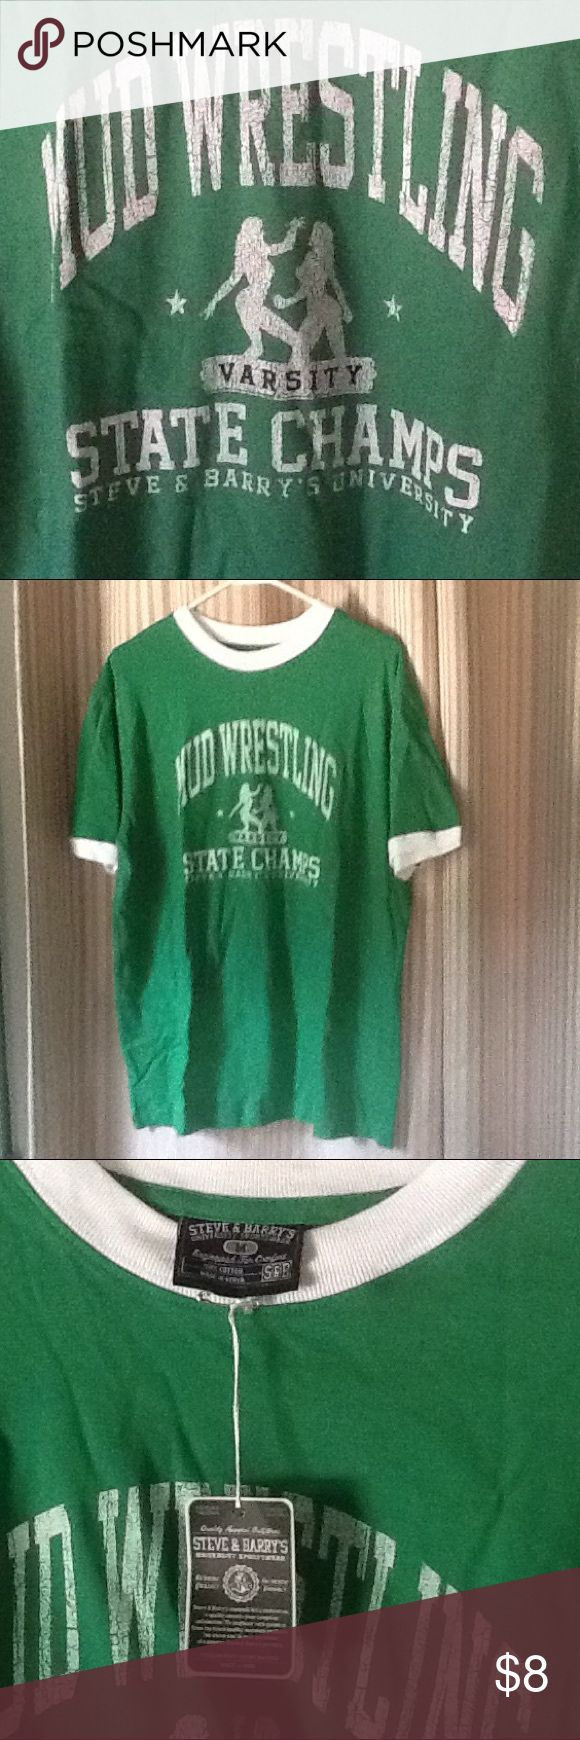 Steve & Barry's University Mud Wrestling T-shirt Steve & Barry's University Sportswear Mud Wrestling Varsity State Champions T-shirt. Size M. NWT. Green and white. Cool retro looking shirt! Steve & Barry's Shirts Tees - Short Sleeve